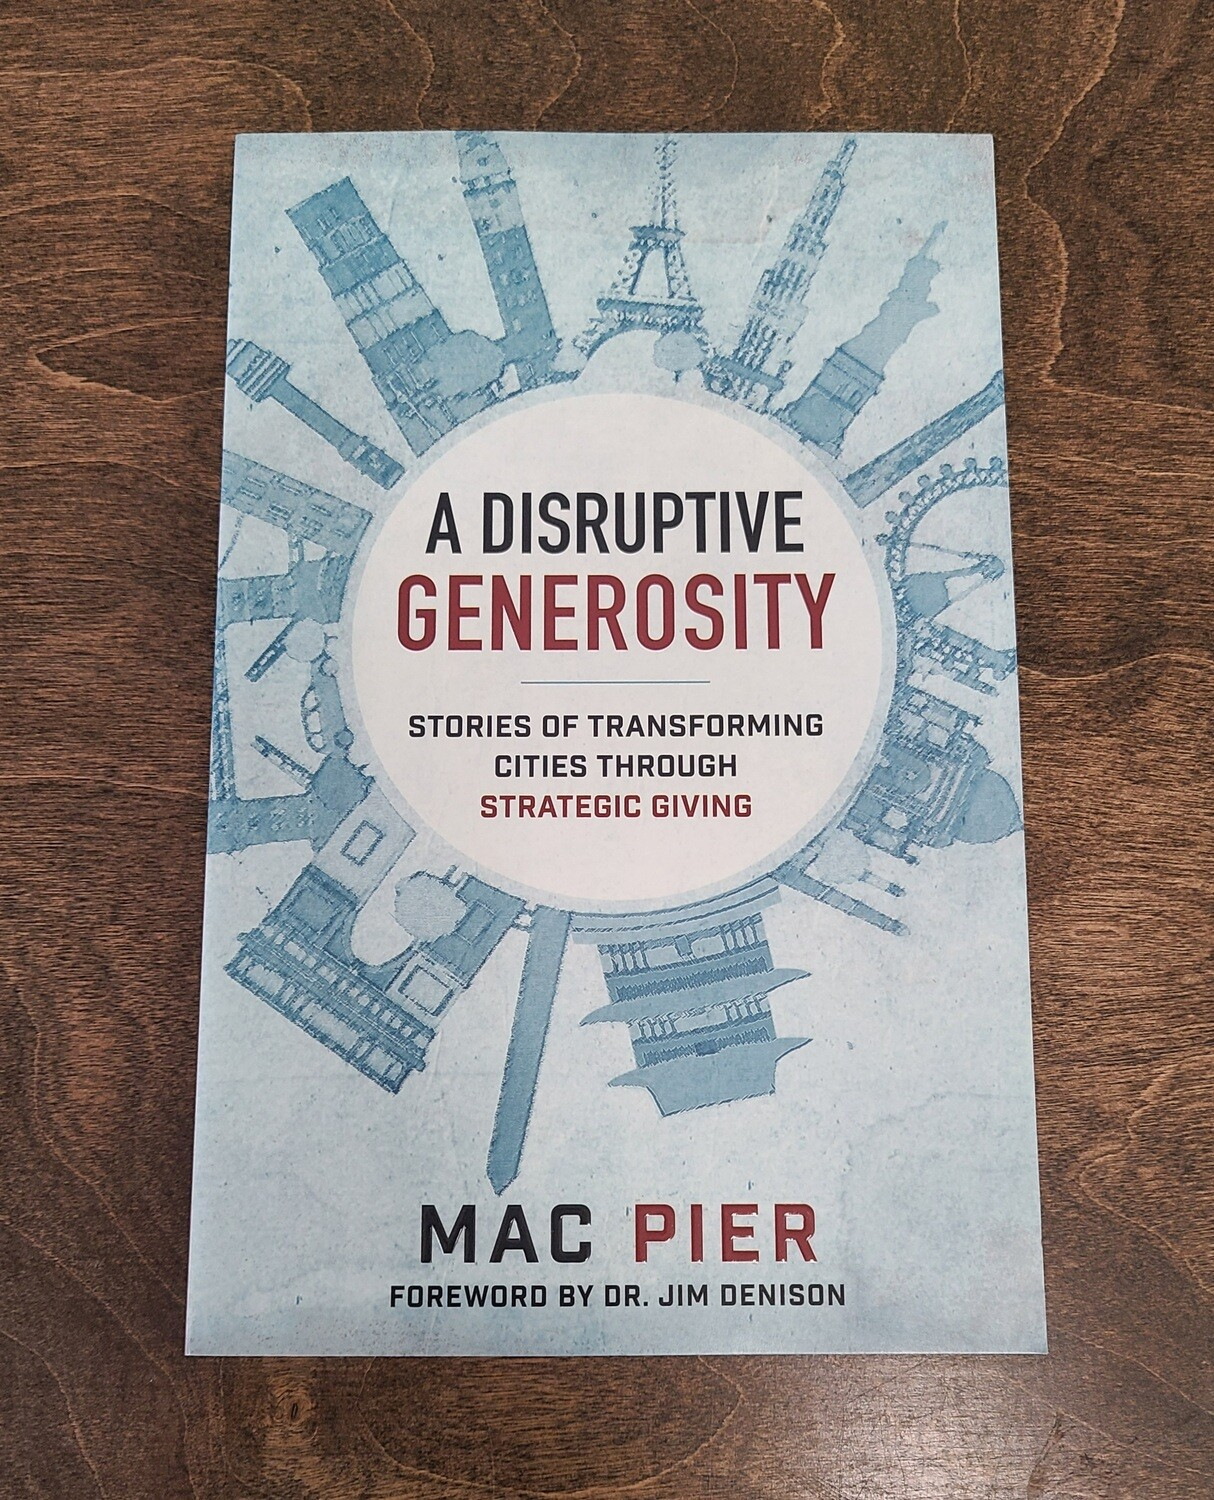 A Disruptive Generosity: Stories of Transforming Cities Through Strategic Giving by Mac Pier